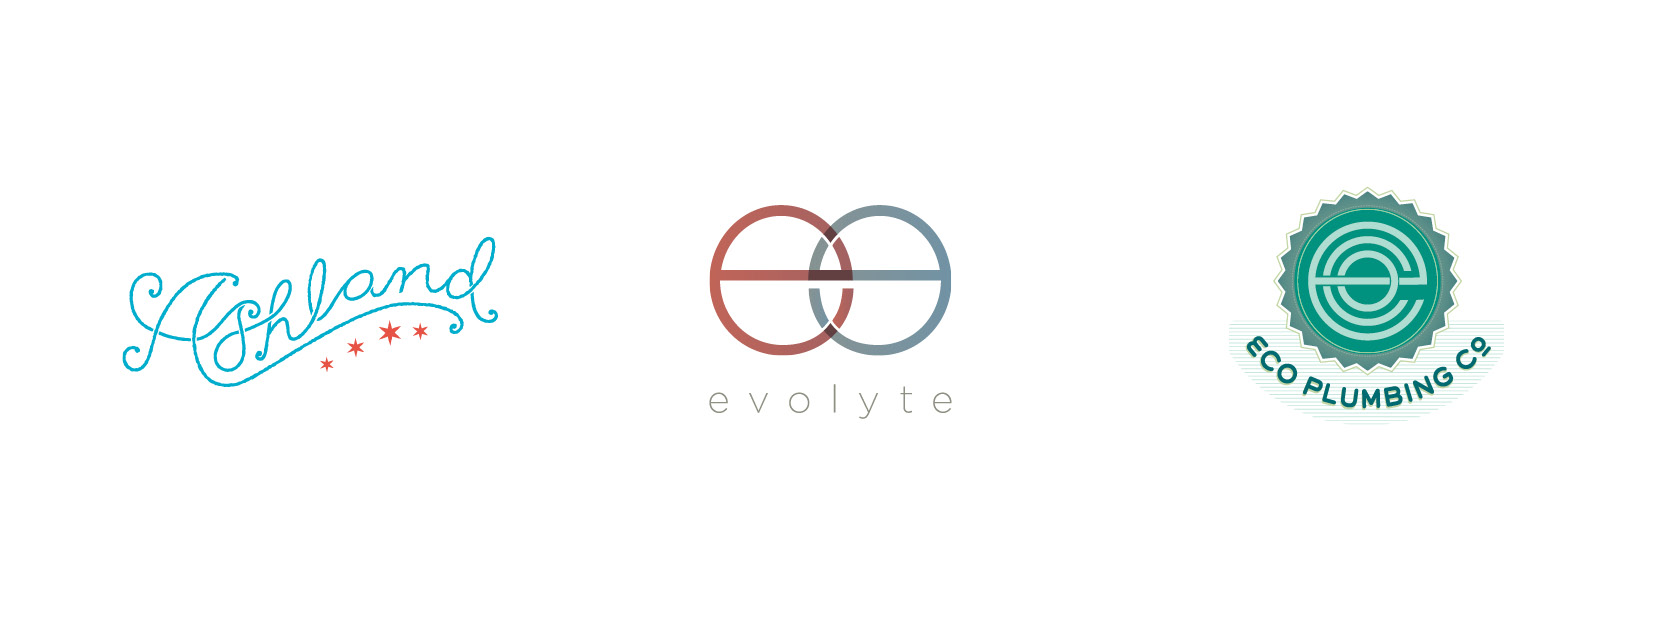 Ashland Leather concept, evolyte marketing,  Eco Plumbing Company